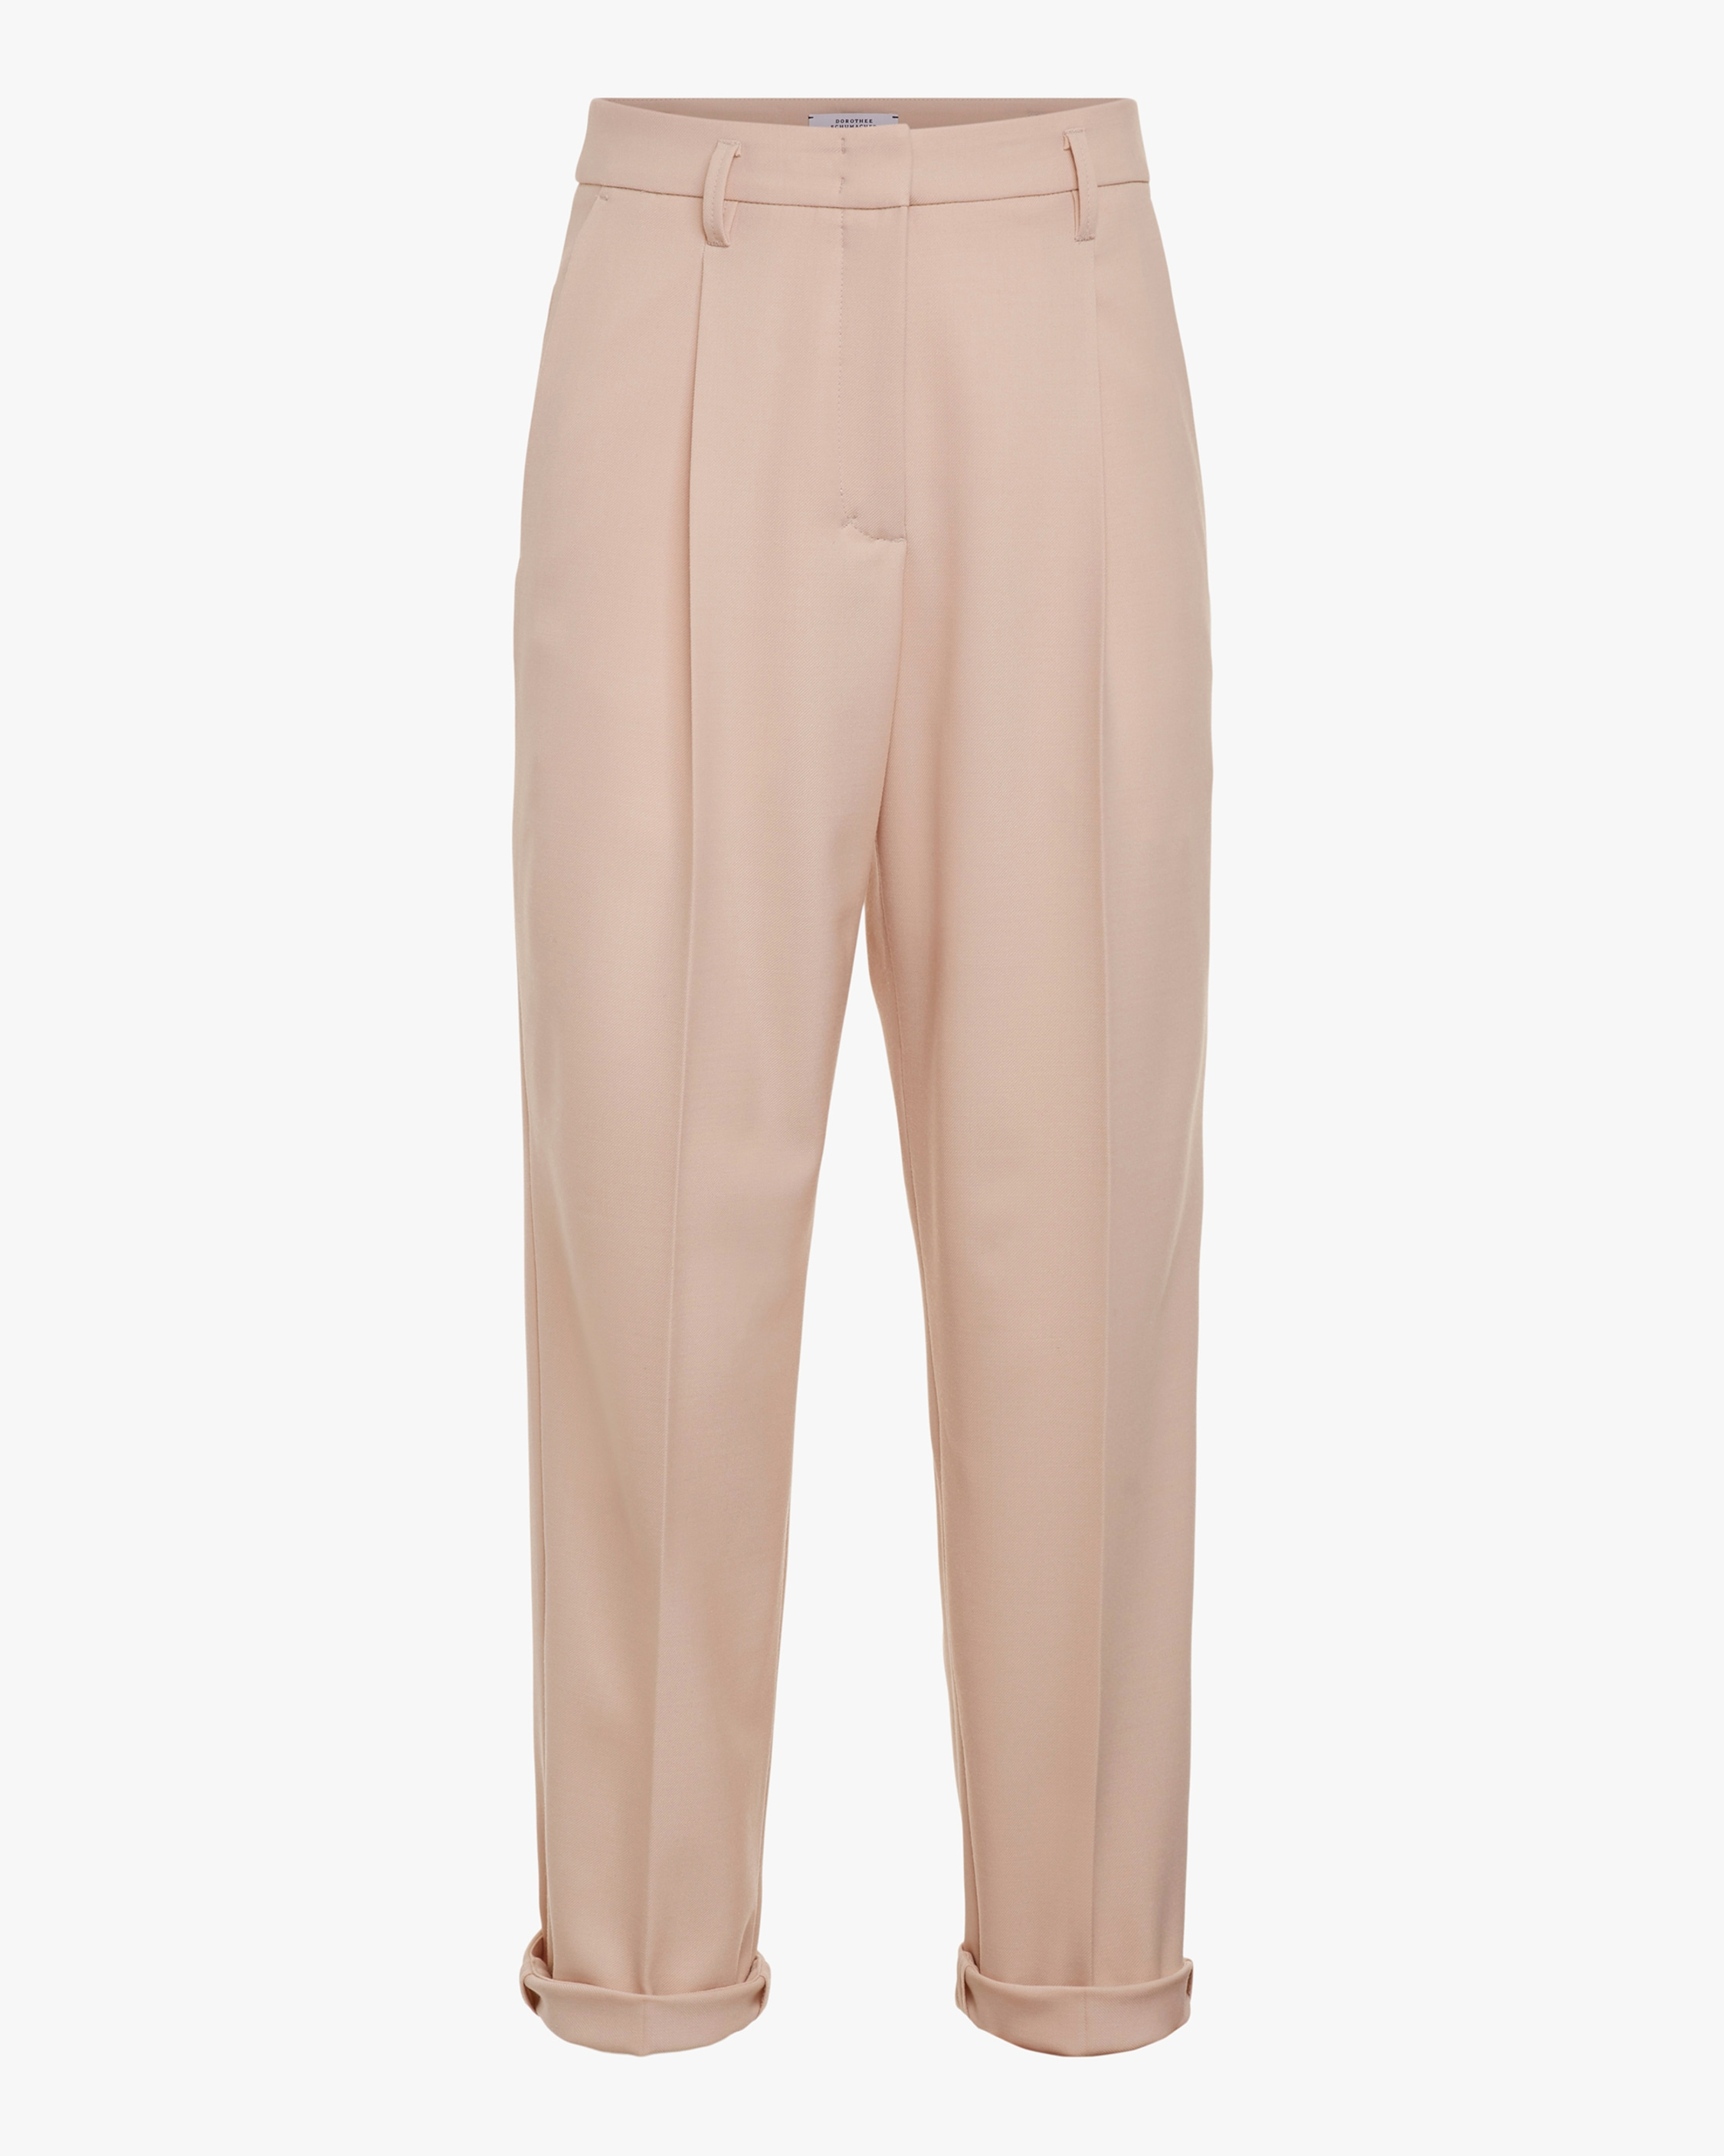 Dorothee Schumacher The New Ambition Pants 2